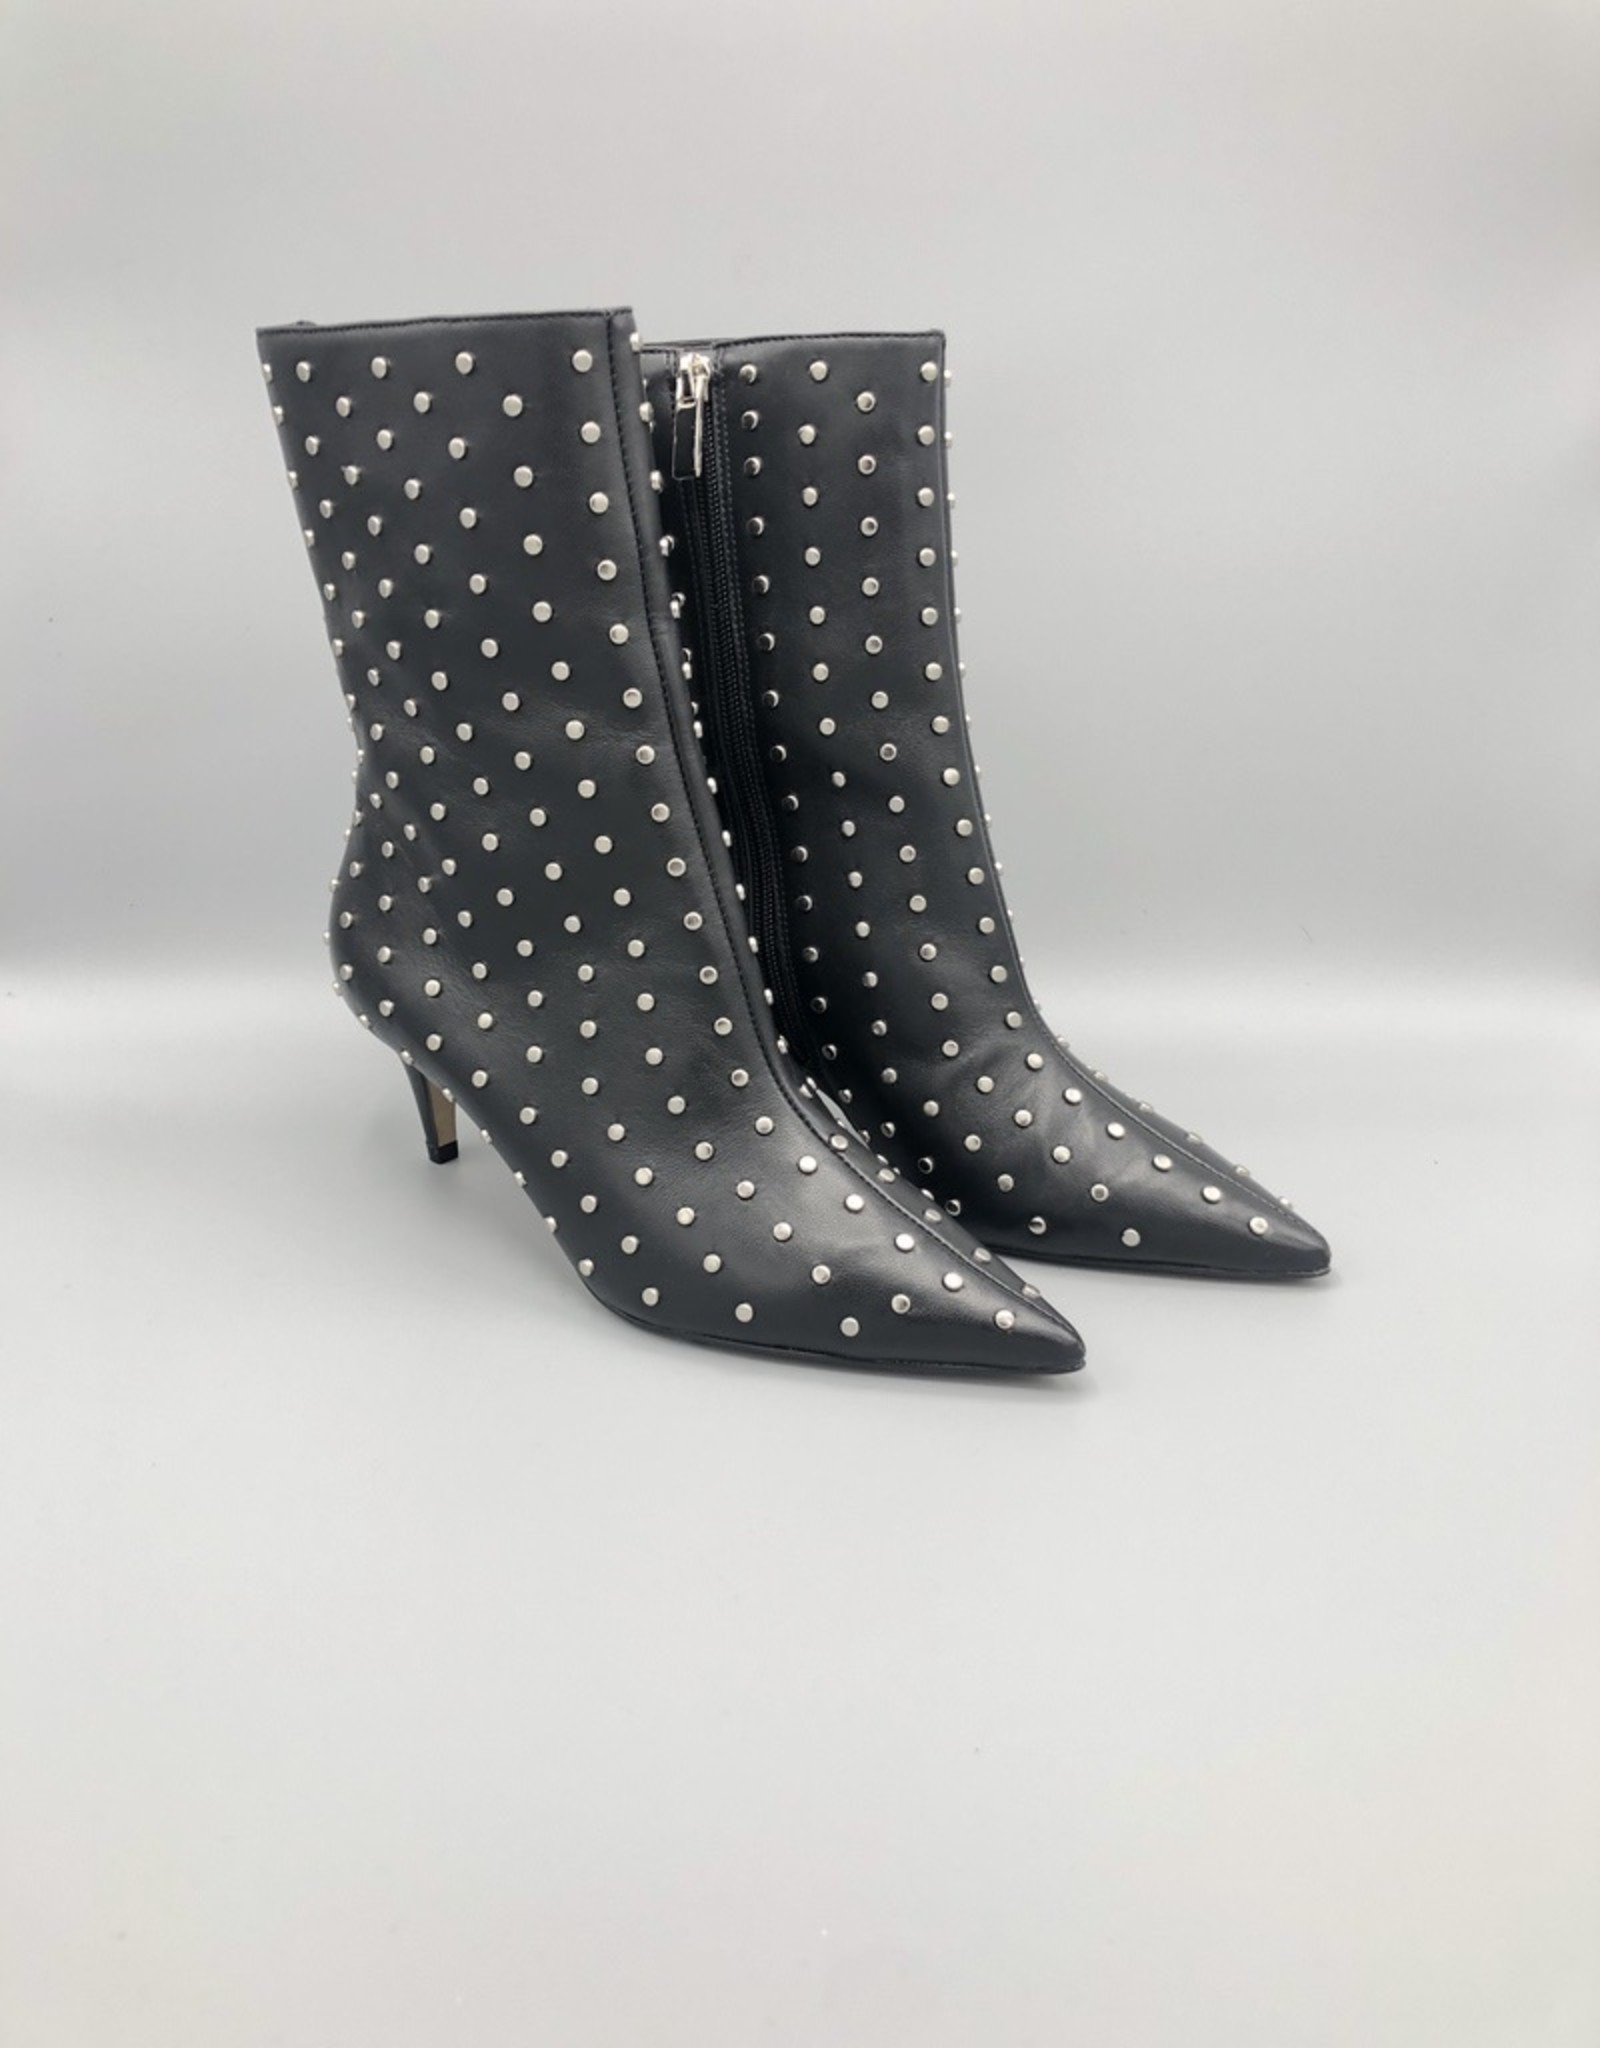 Carrano Bruno Menegatti Mid-Calf Kitten Heel Studded Leather Boot